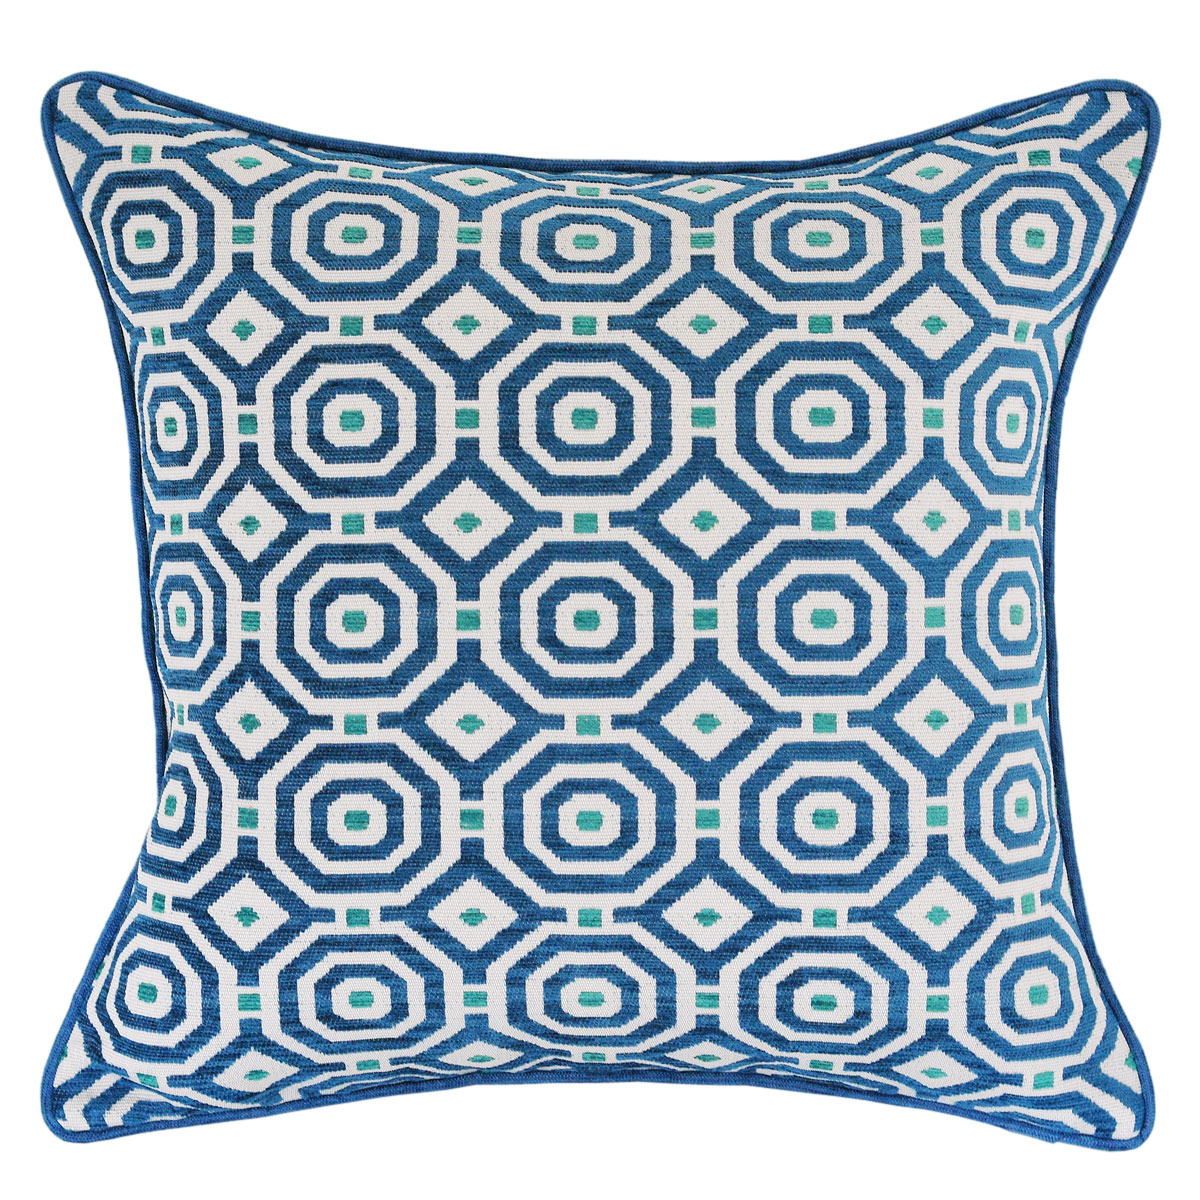 Astor Lagoon Cushion - 45x45cm